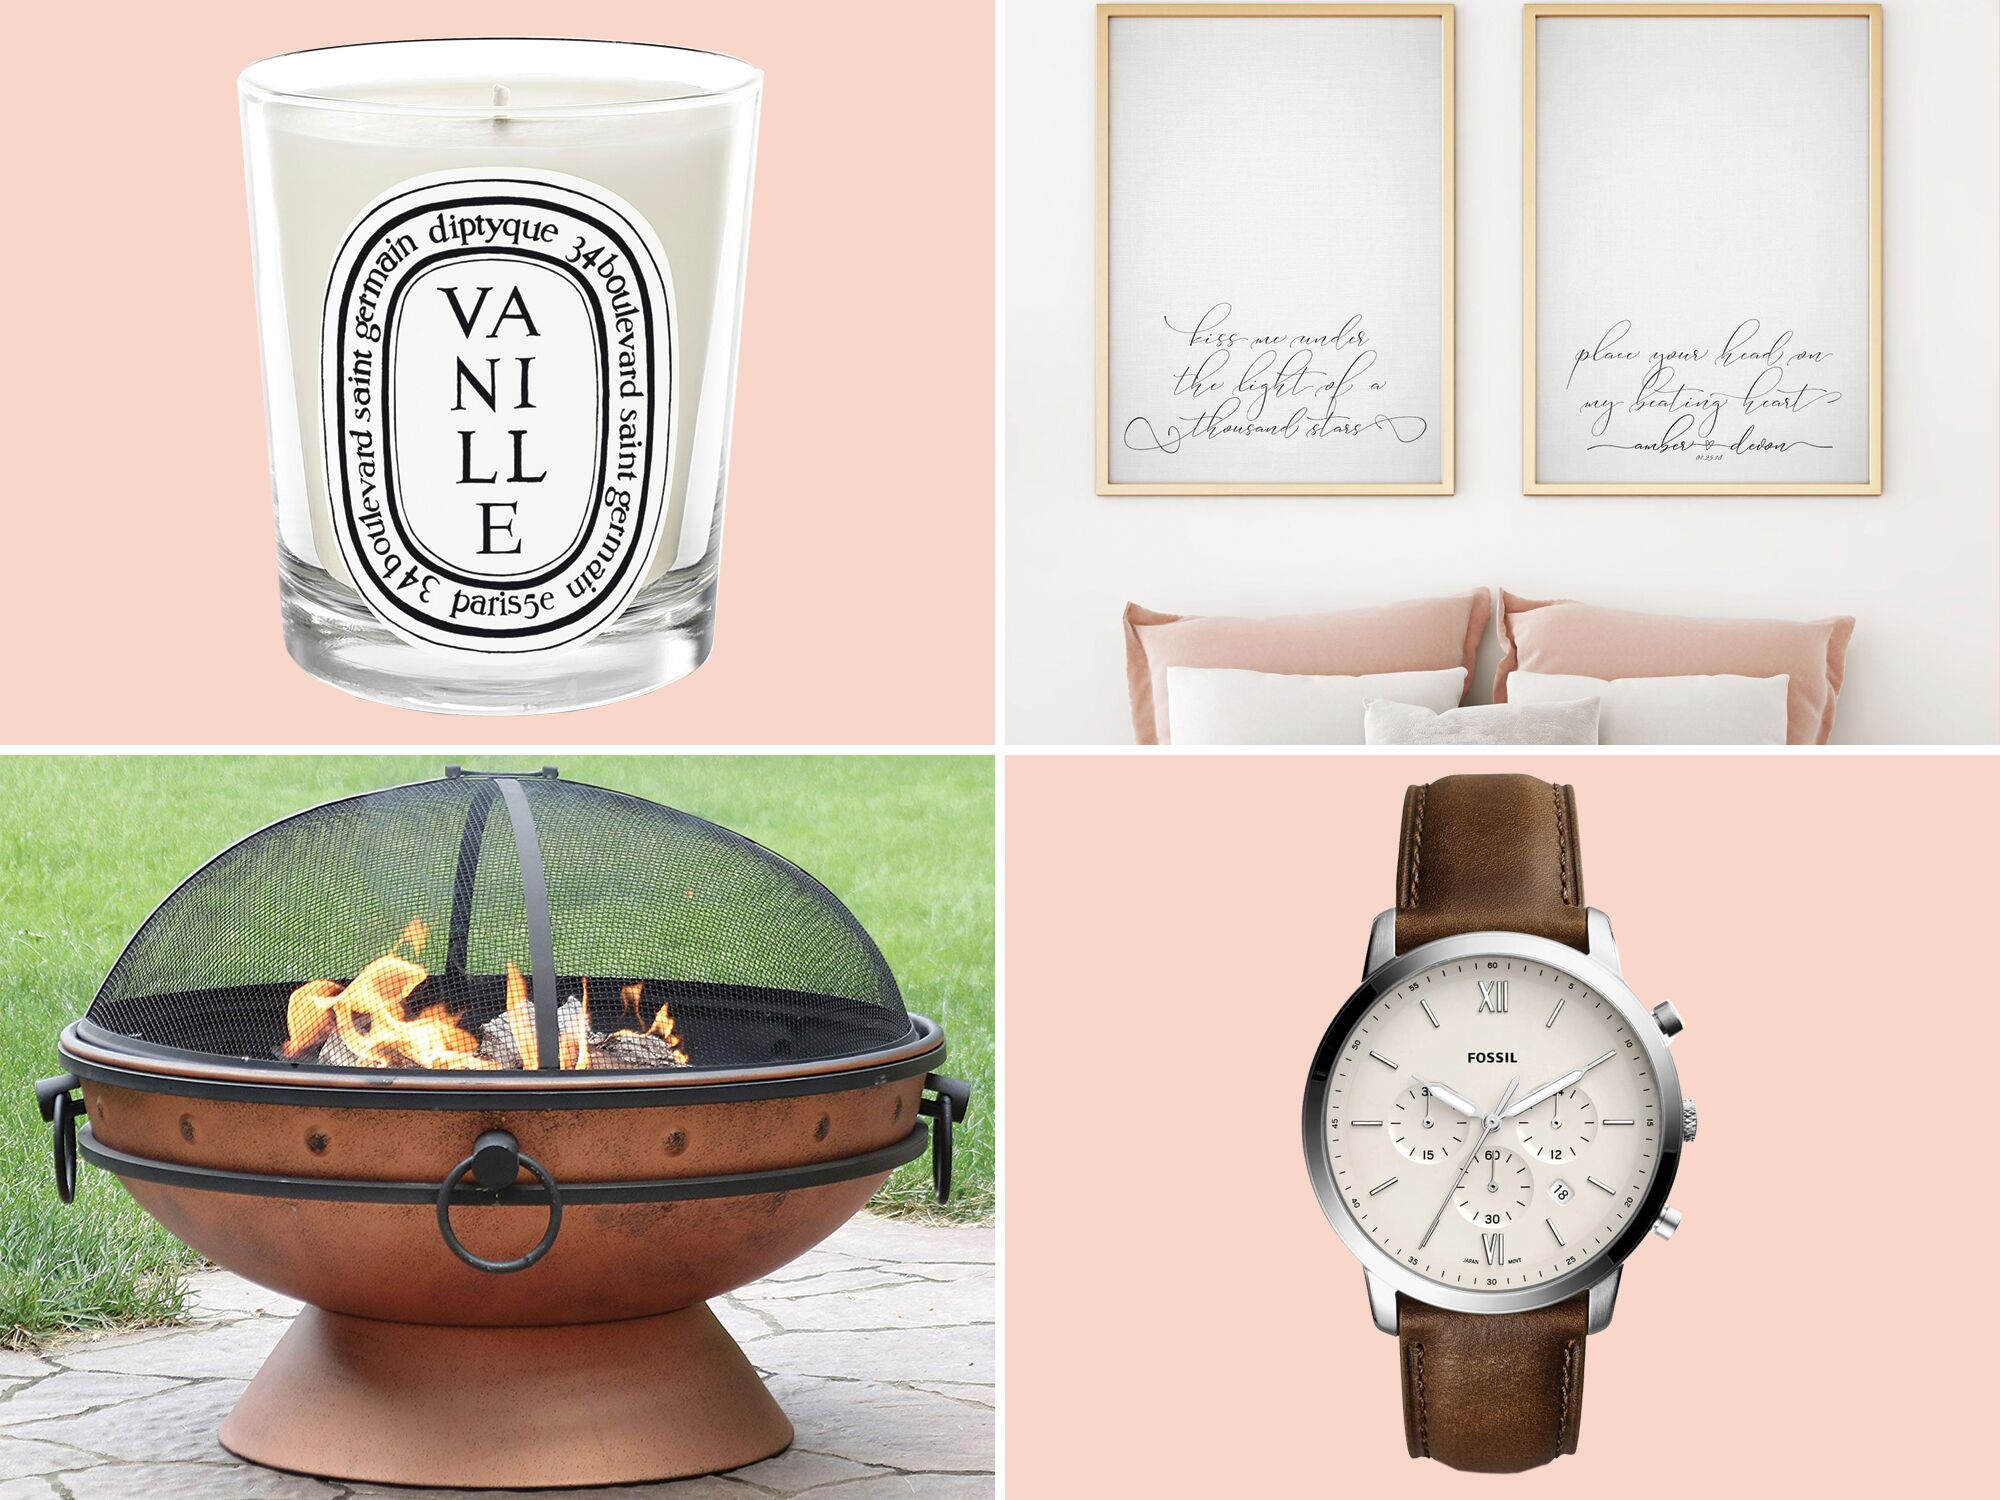 8 Year Anniversary Gift Ideas For Him Her And Them